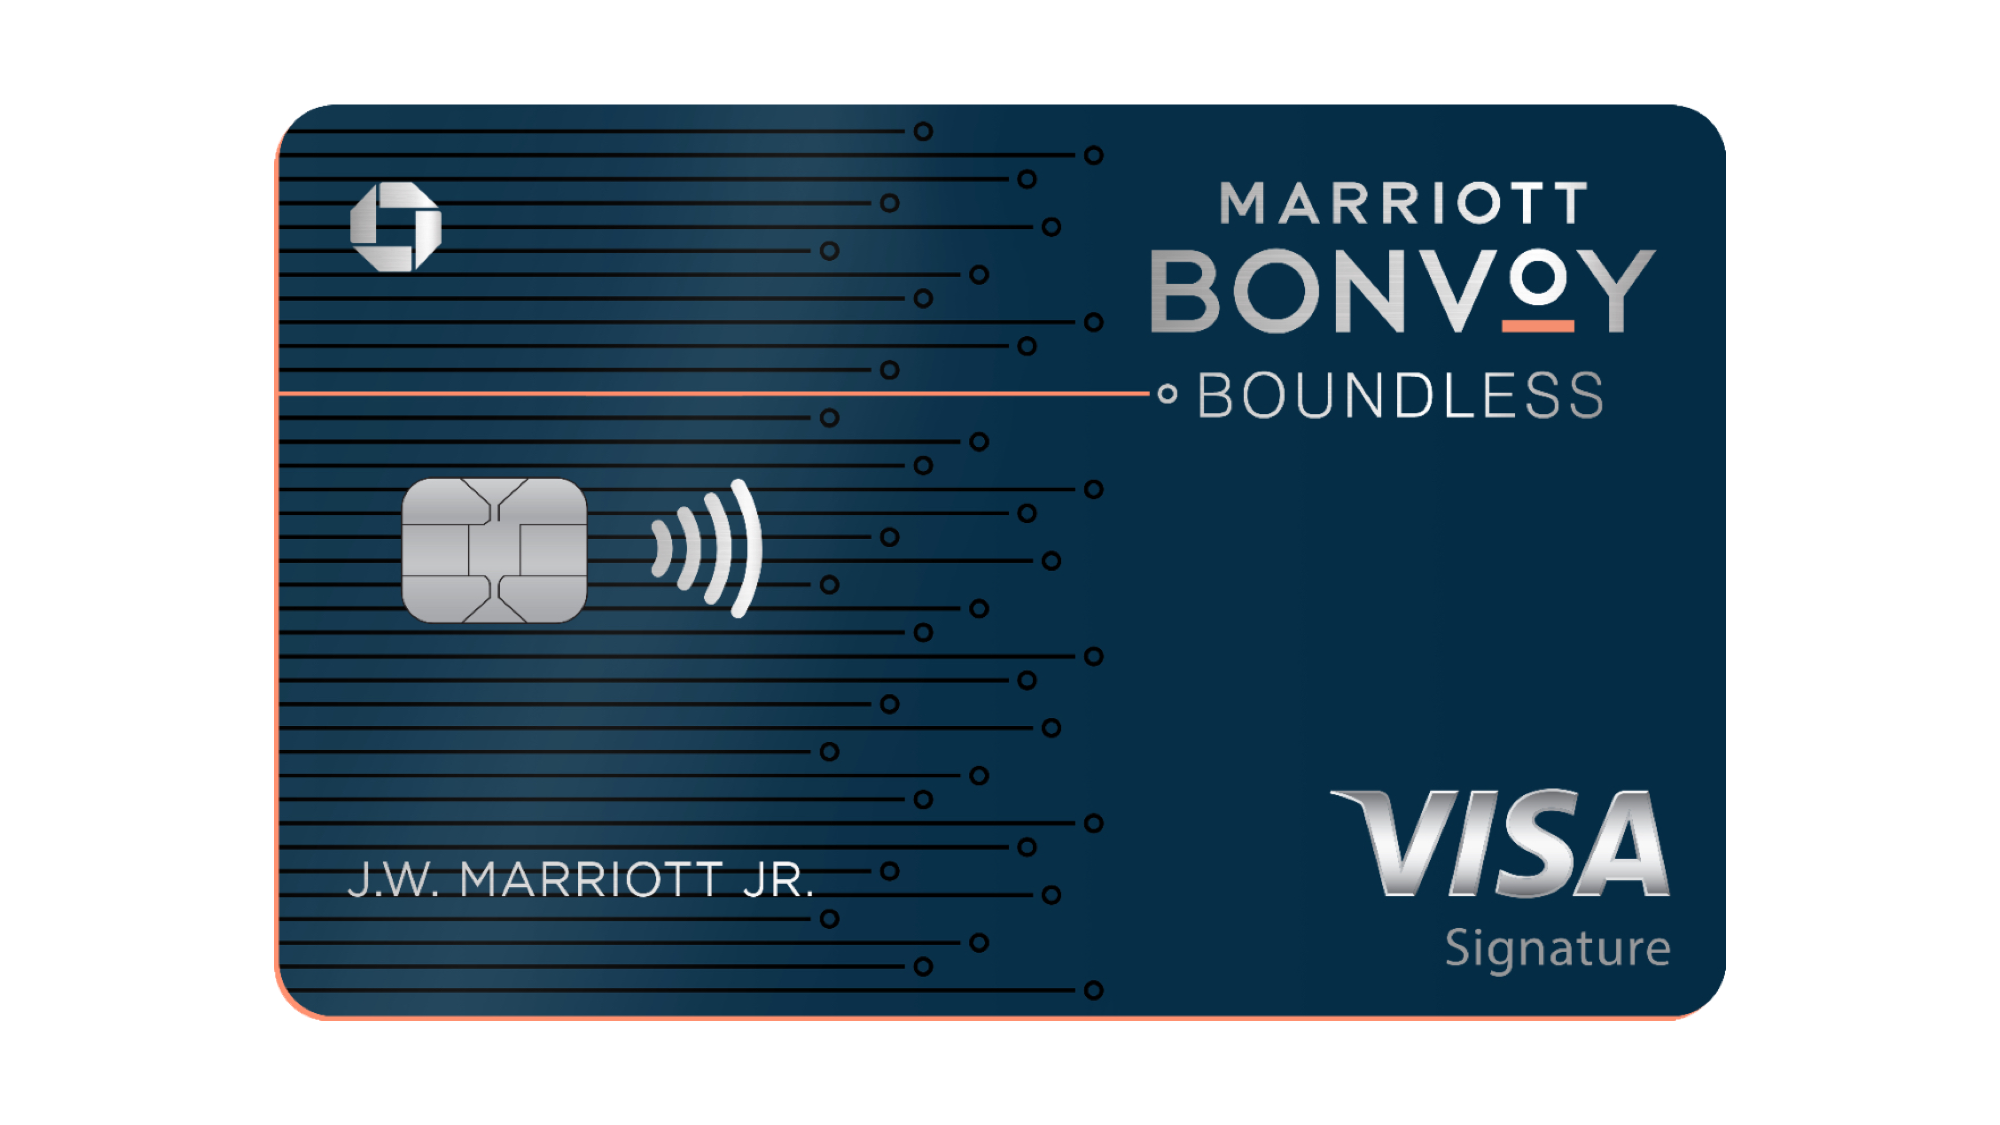 Terms & Conditions | Loyalty Rewards Program | Marriott Bonvoy